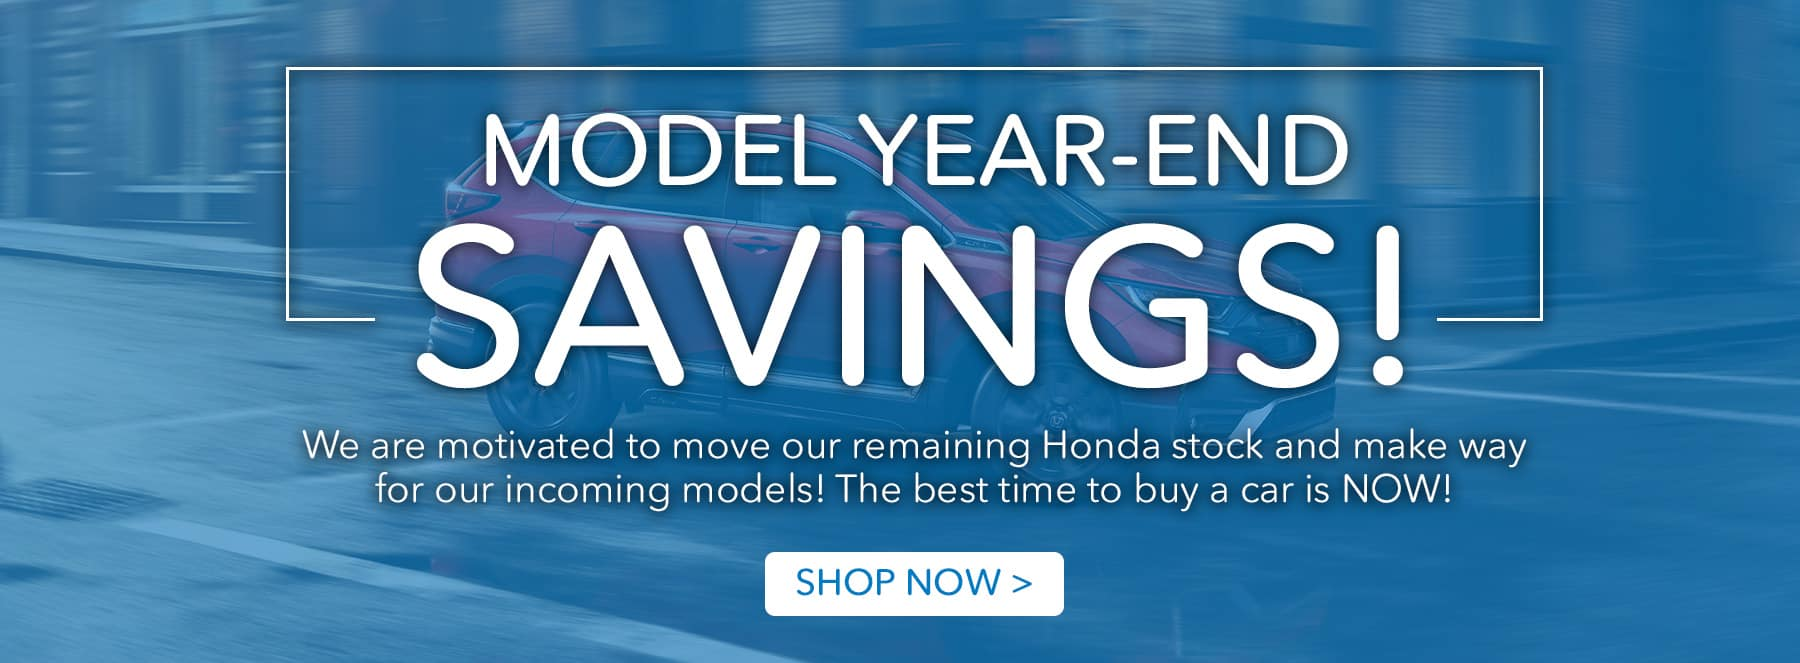 Model Year-End Savings